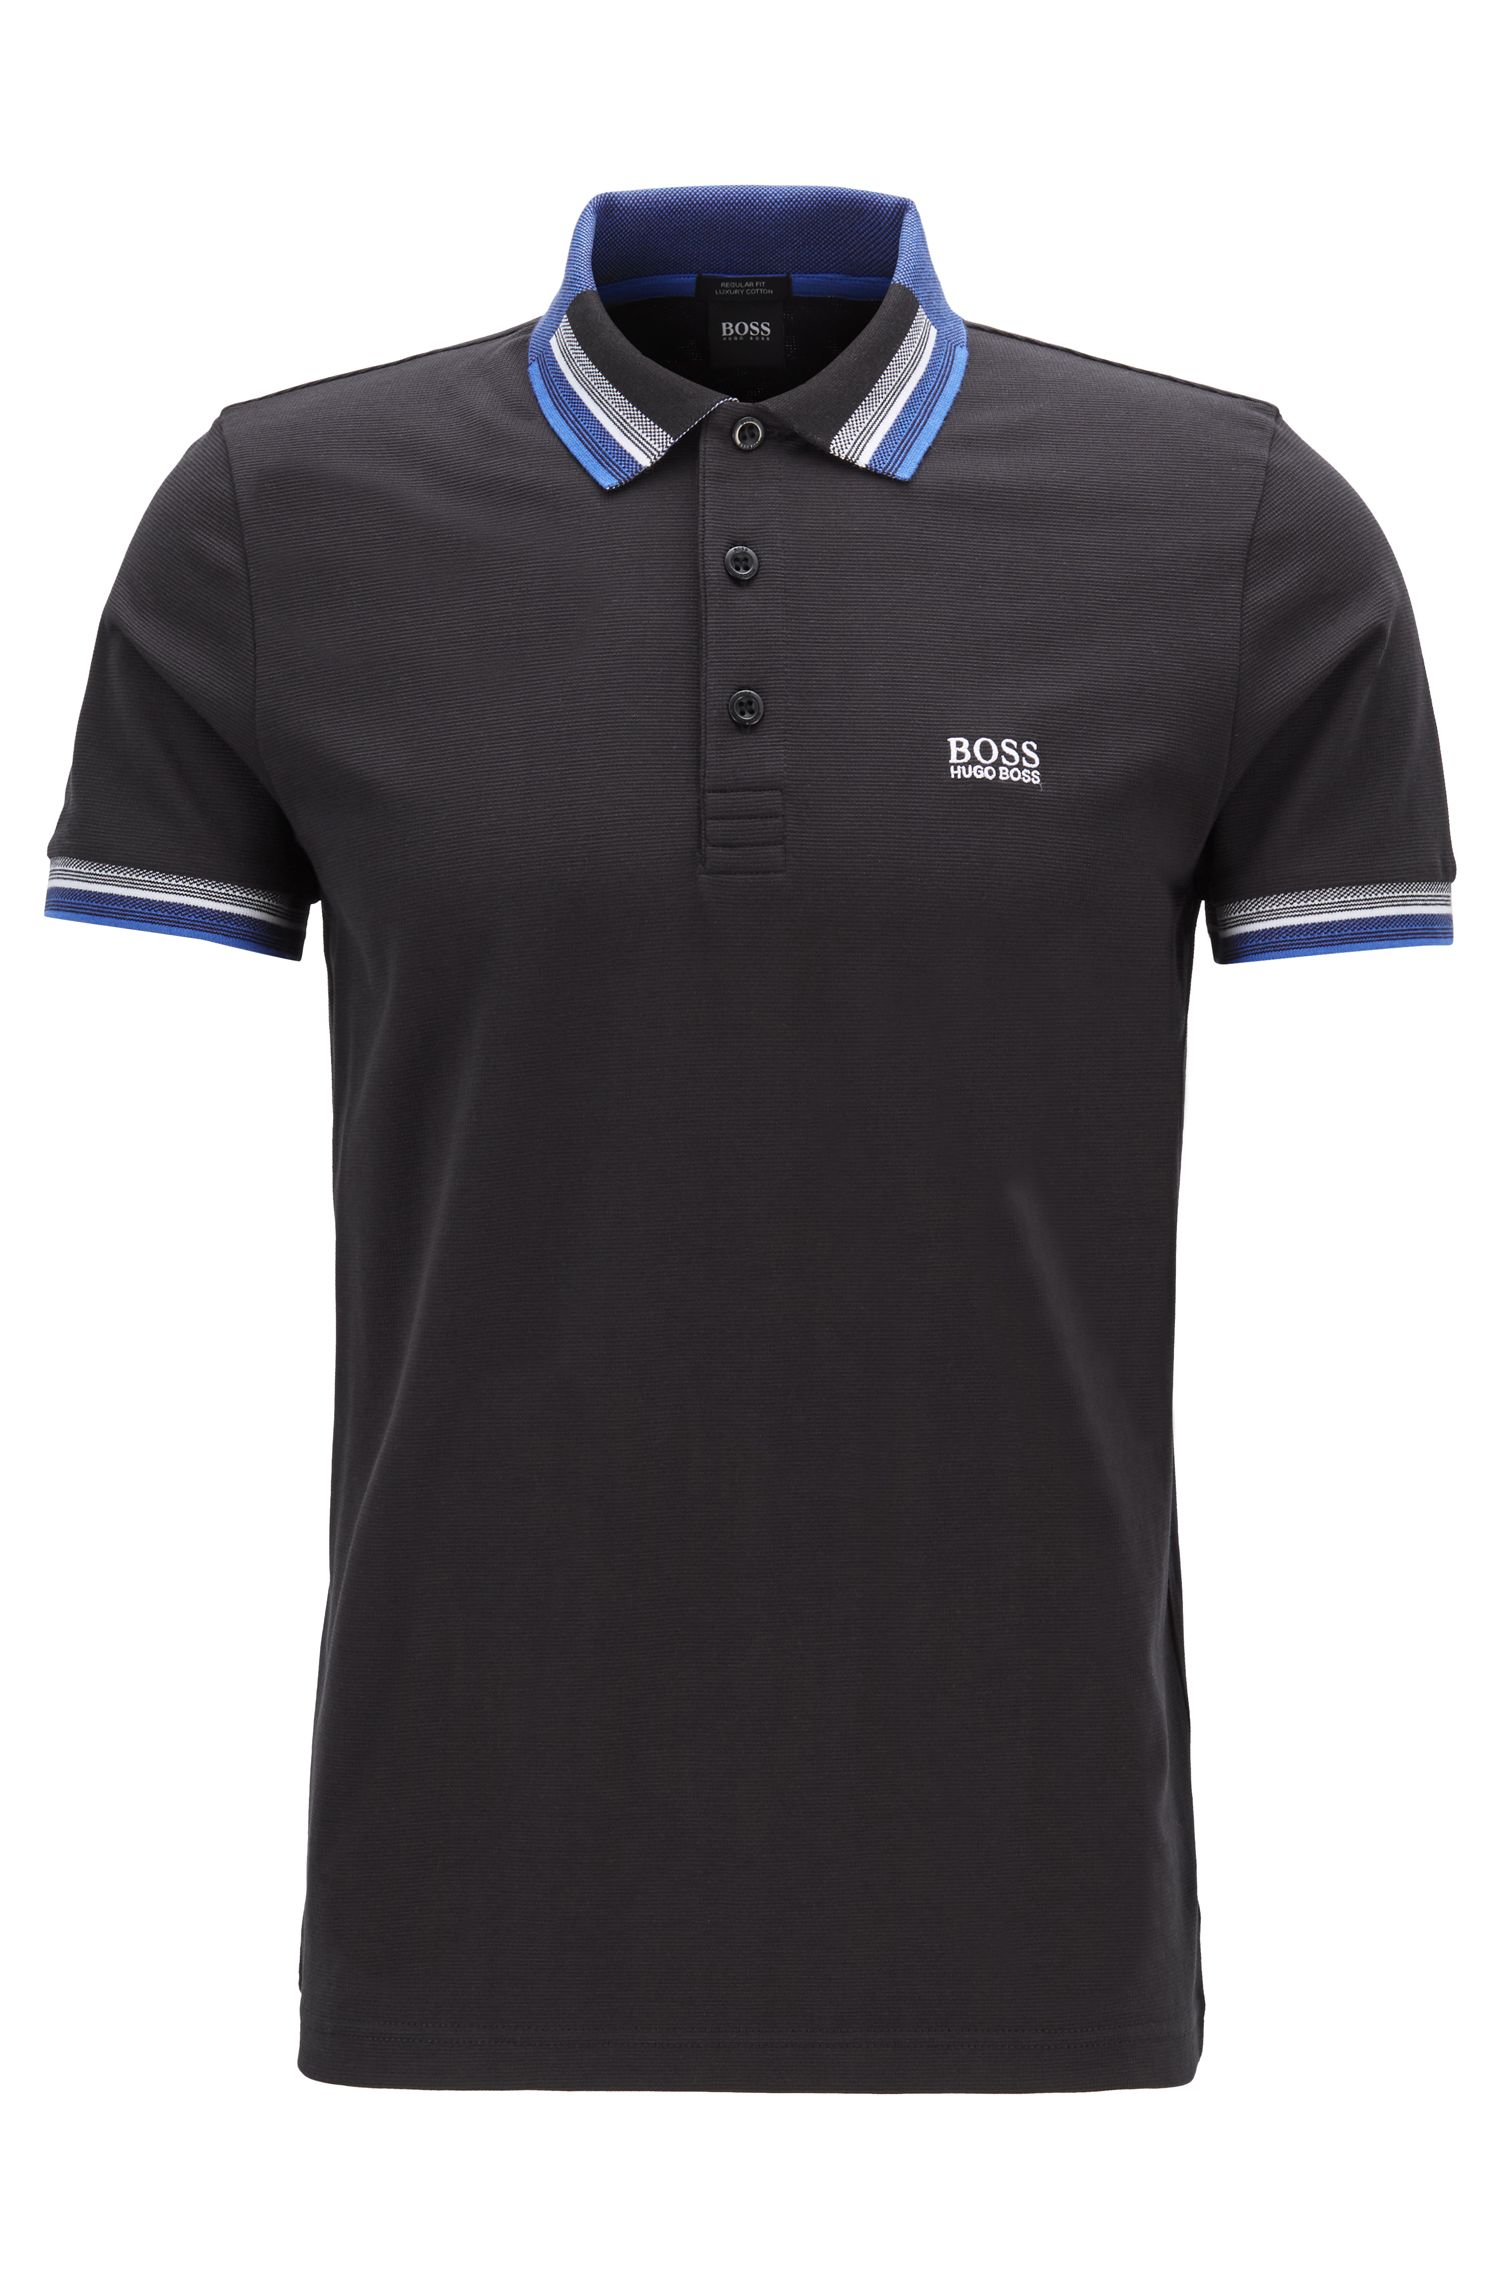 Piqué cotton polo shirt with multicolored collar and cuffs, Black